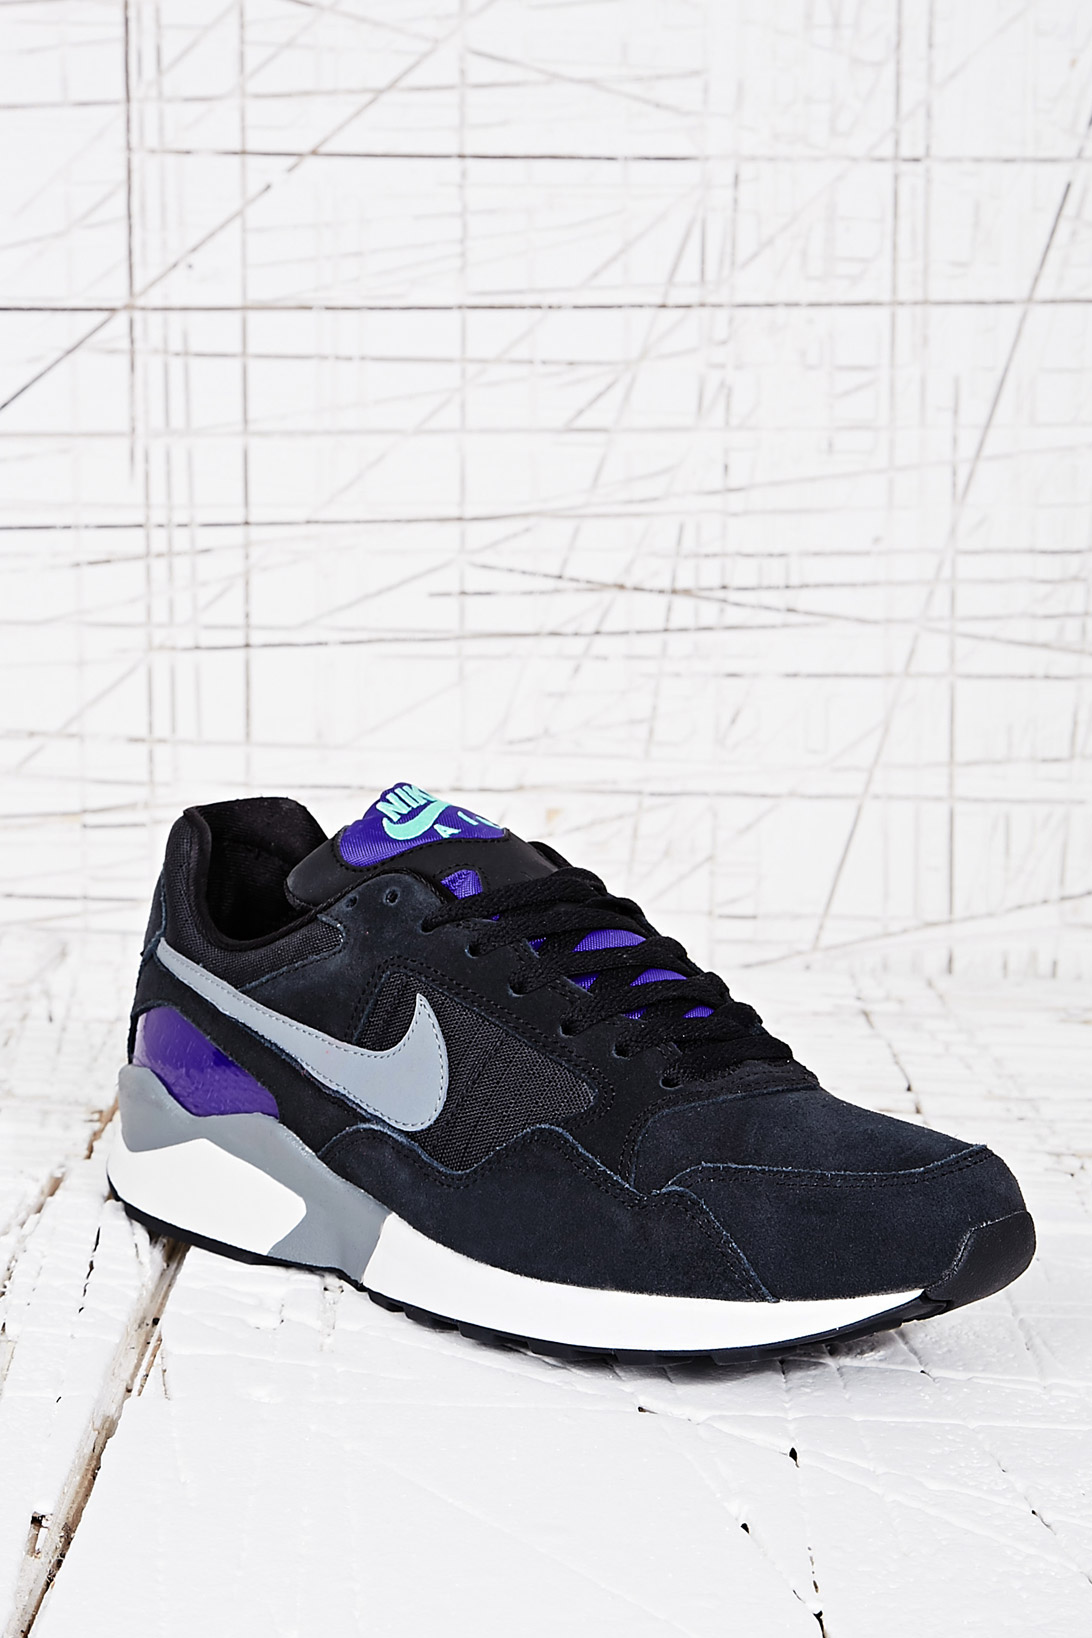 new arrival 473f7 368f3 Nike Air Pegasus 92 Trainers in Black Amp Purple in Blue for Men - Lyst